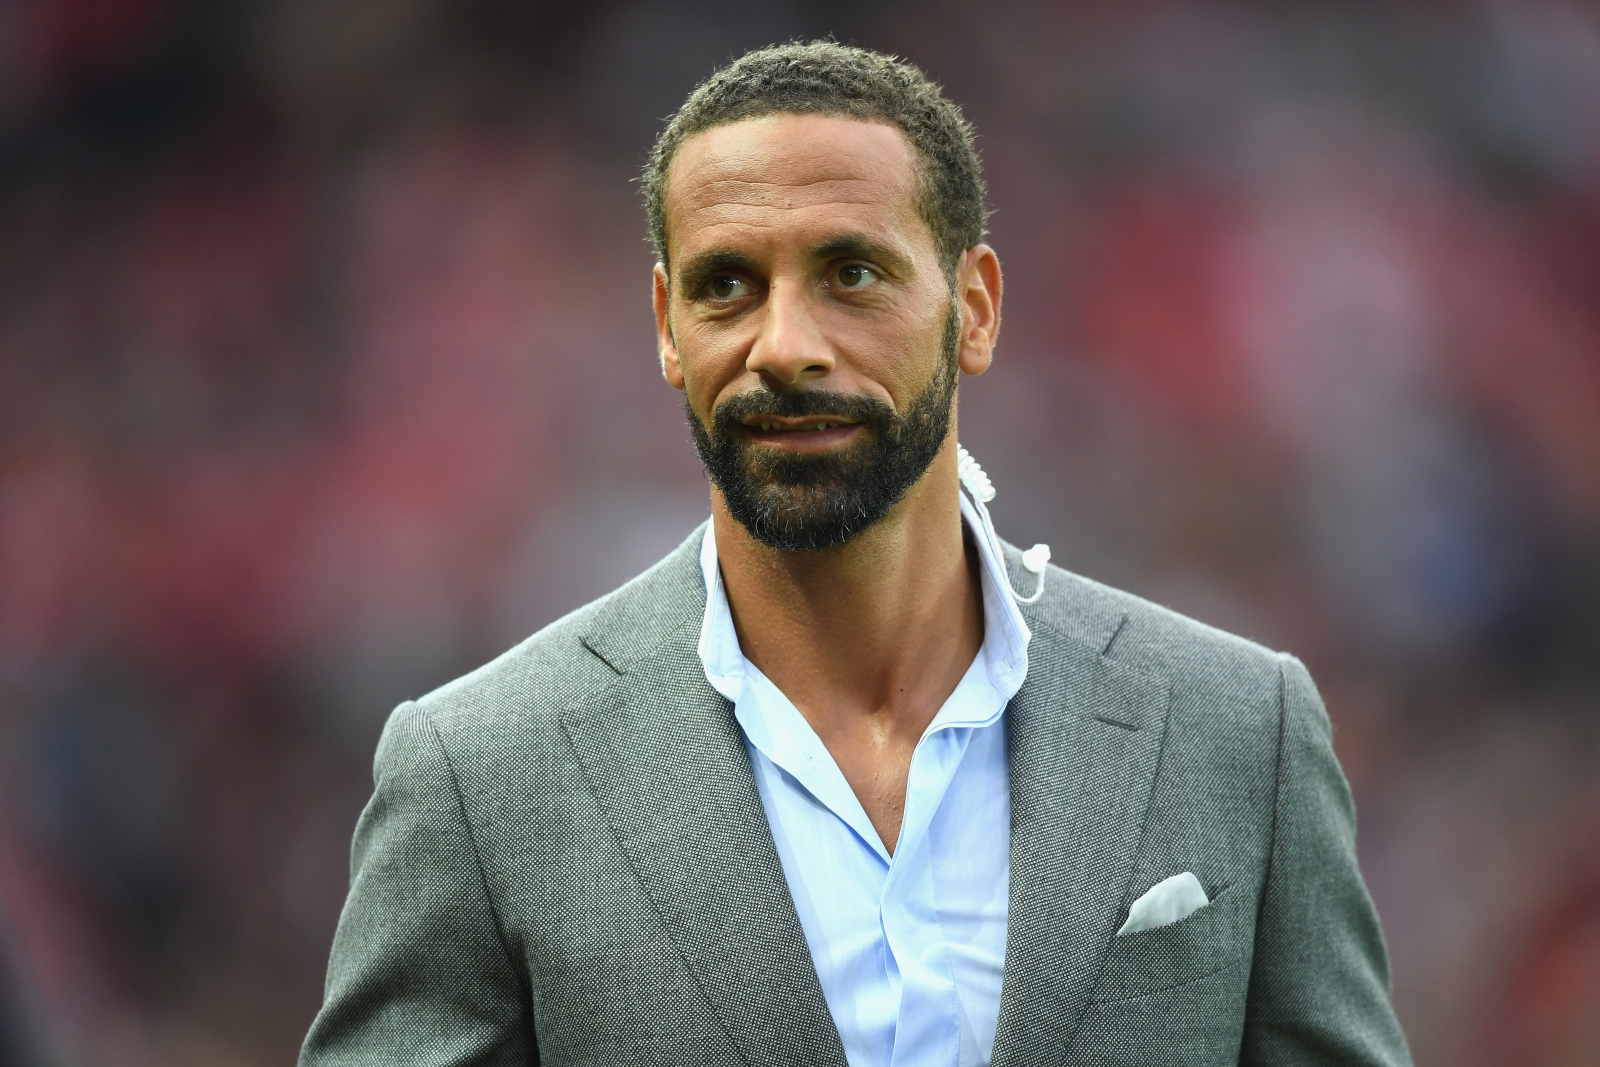 Being Mum And Dad: Rio Ferdinand opens up about suicidal thoughts following wife Rebecca's death